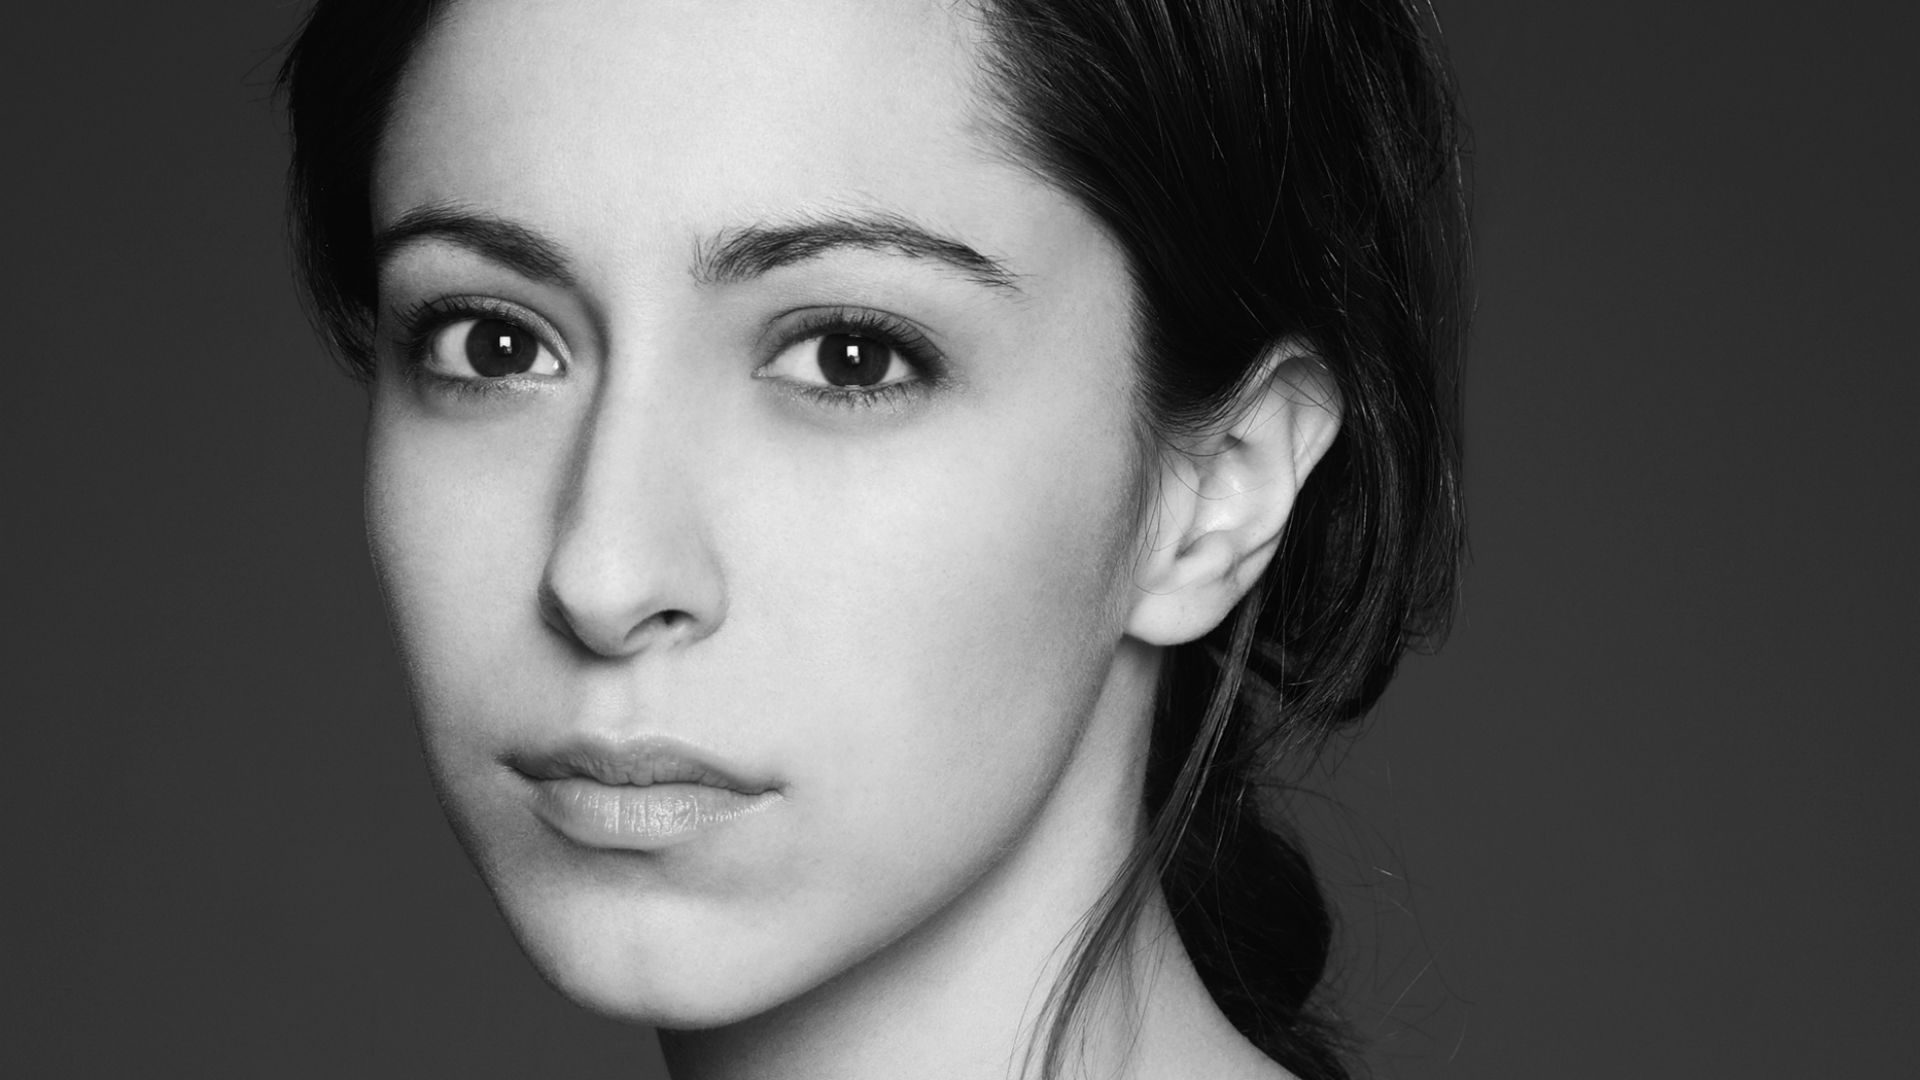 monochrome oona chaplin face wallpaper 58879